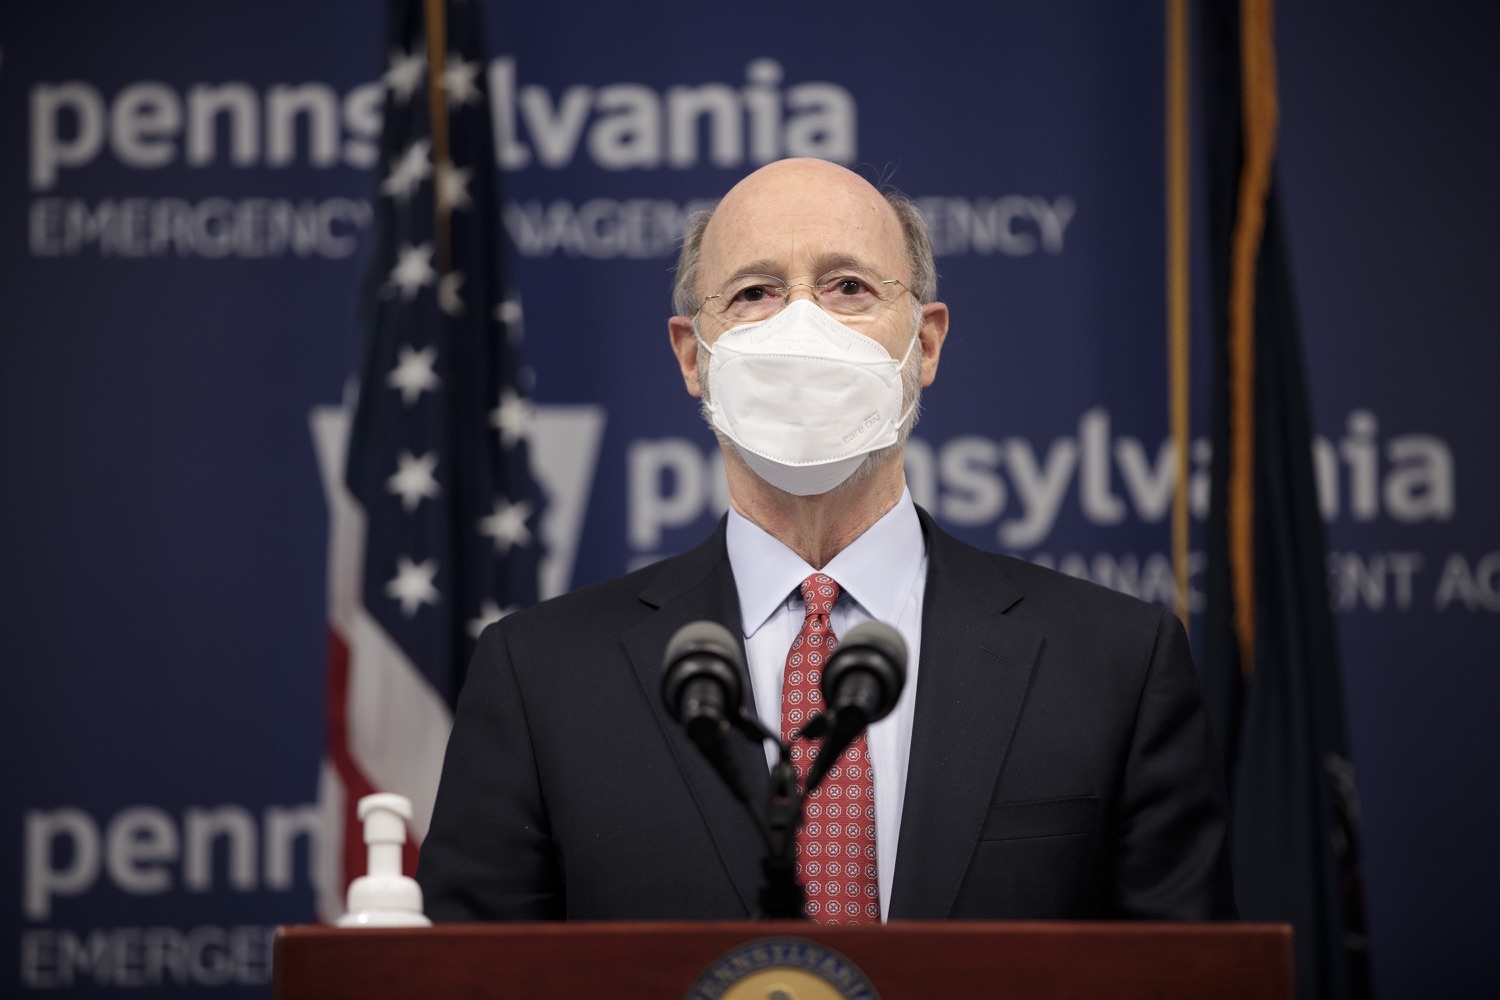 "<a href=""https://filesource.wostreaming.net/commonwealthofpa/photo/18535_gov_nellie_bly_dz_04.jpg"" target=""_blank"">⇣ Download Photo<br></a>Pennsylvania Governor Tom Wolf speaking at the press conference.  Governor Tom Wolf wants to bet on 44,000 students to help them earn a college degree while graduating with less debt and building successful lives in Pennsylvania. Today, the governor held a press conference to discuss how his historic Nellie Bly Scholarship Program would provide need-based financial assistance for students at 14 universities in the states system. Harrisburg, PA  February 17, 2021"